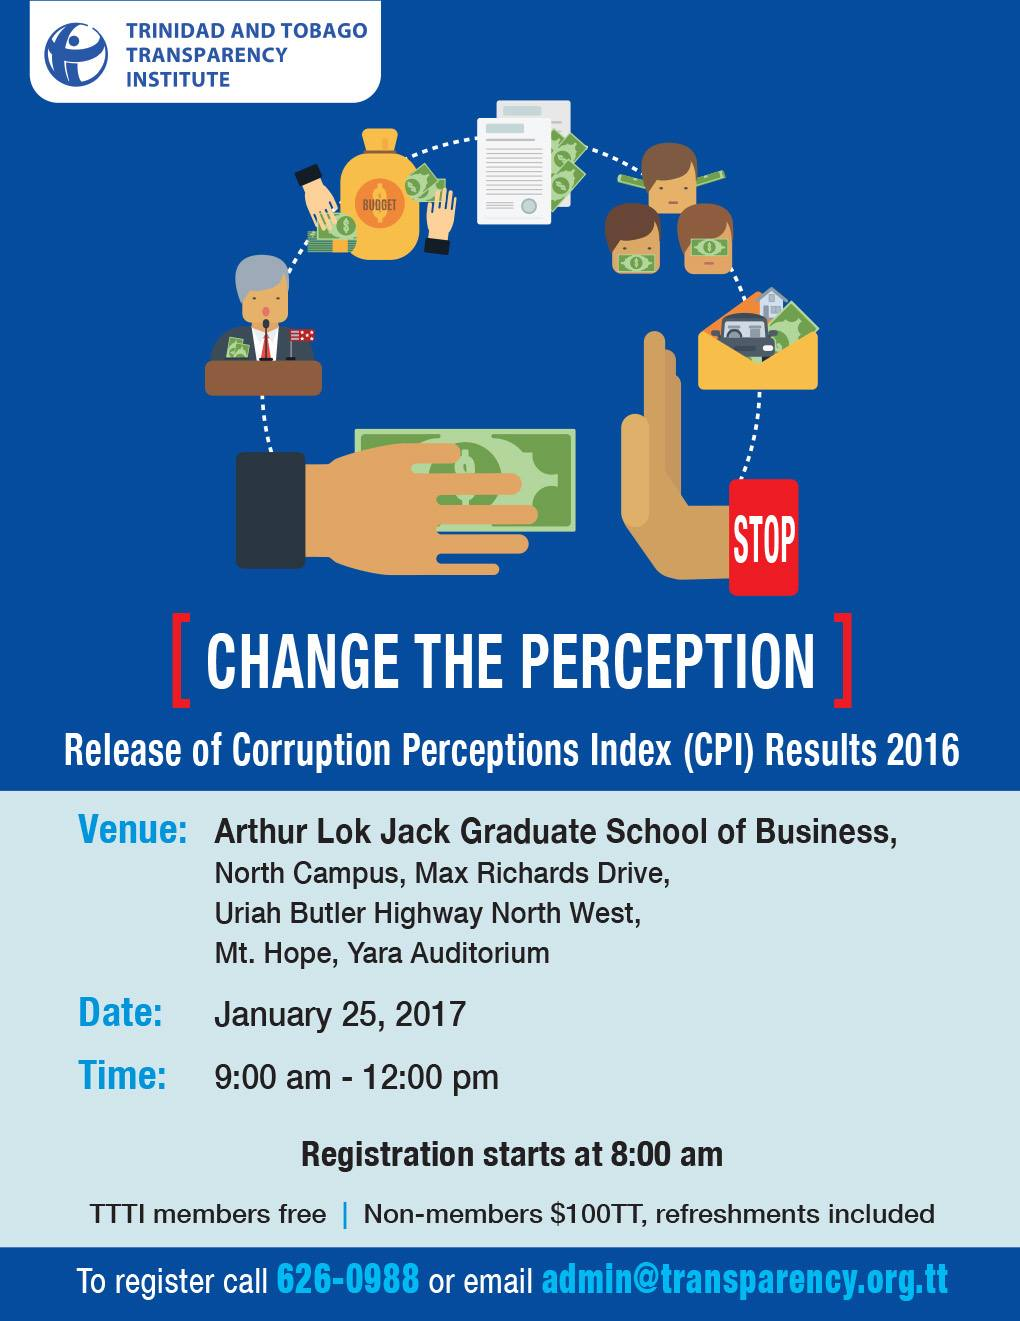 Release of Corruption Perceptions Index (CPI) 2016